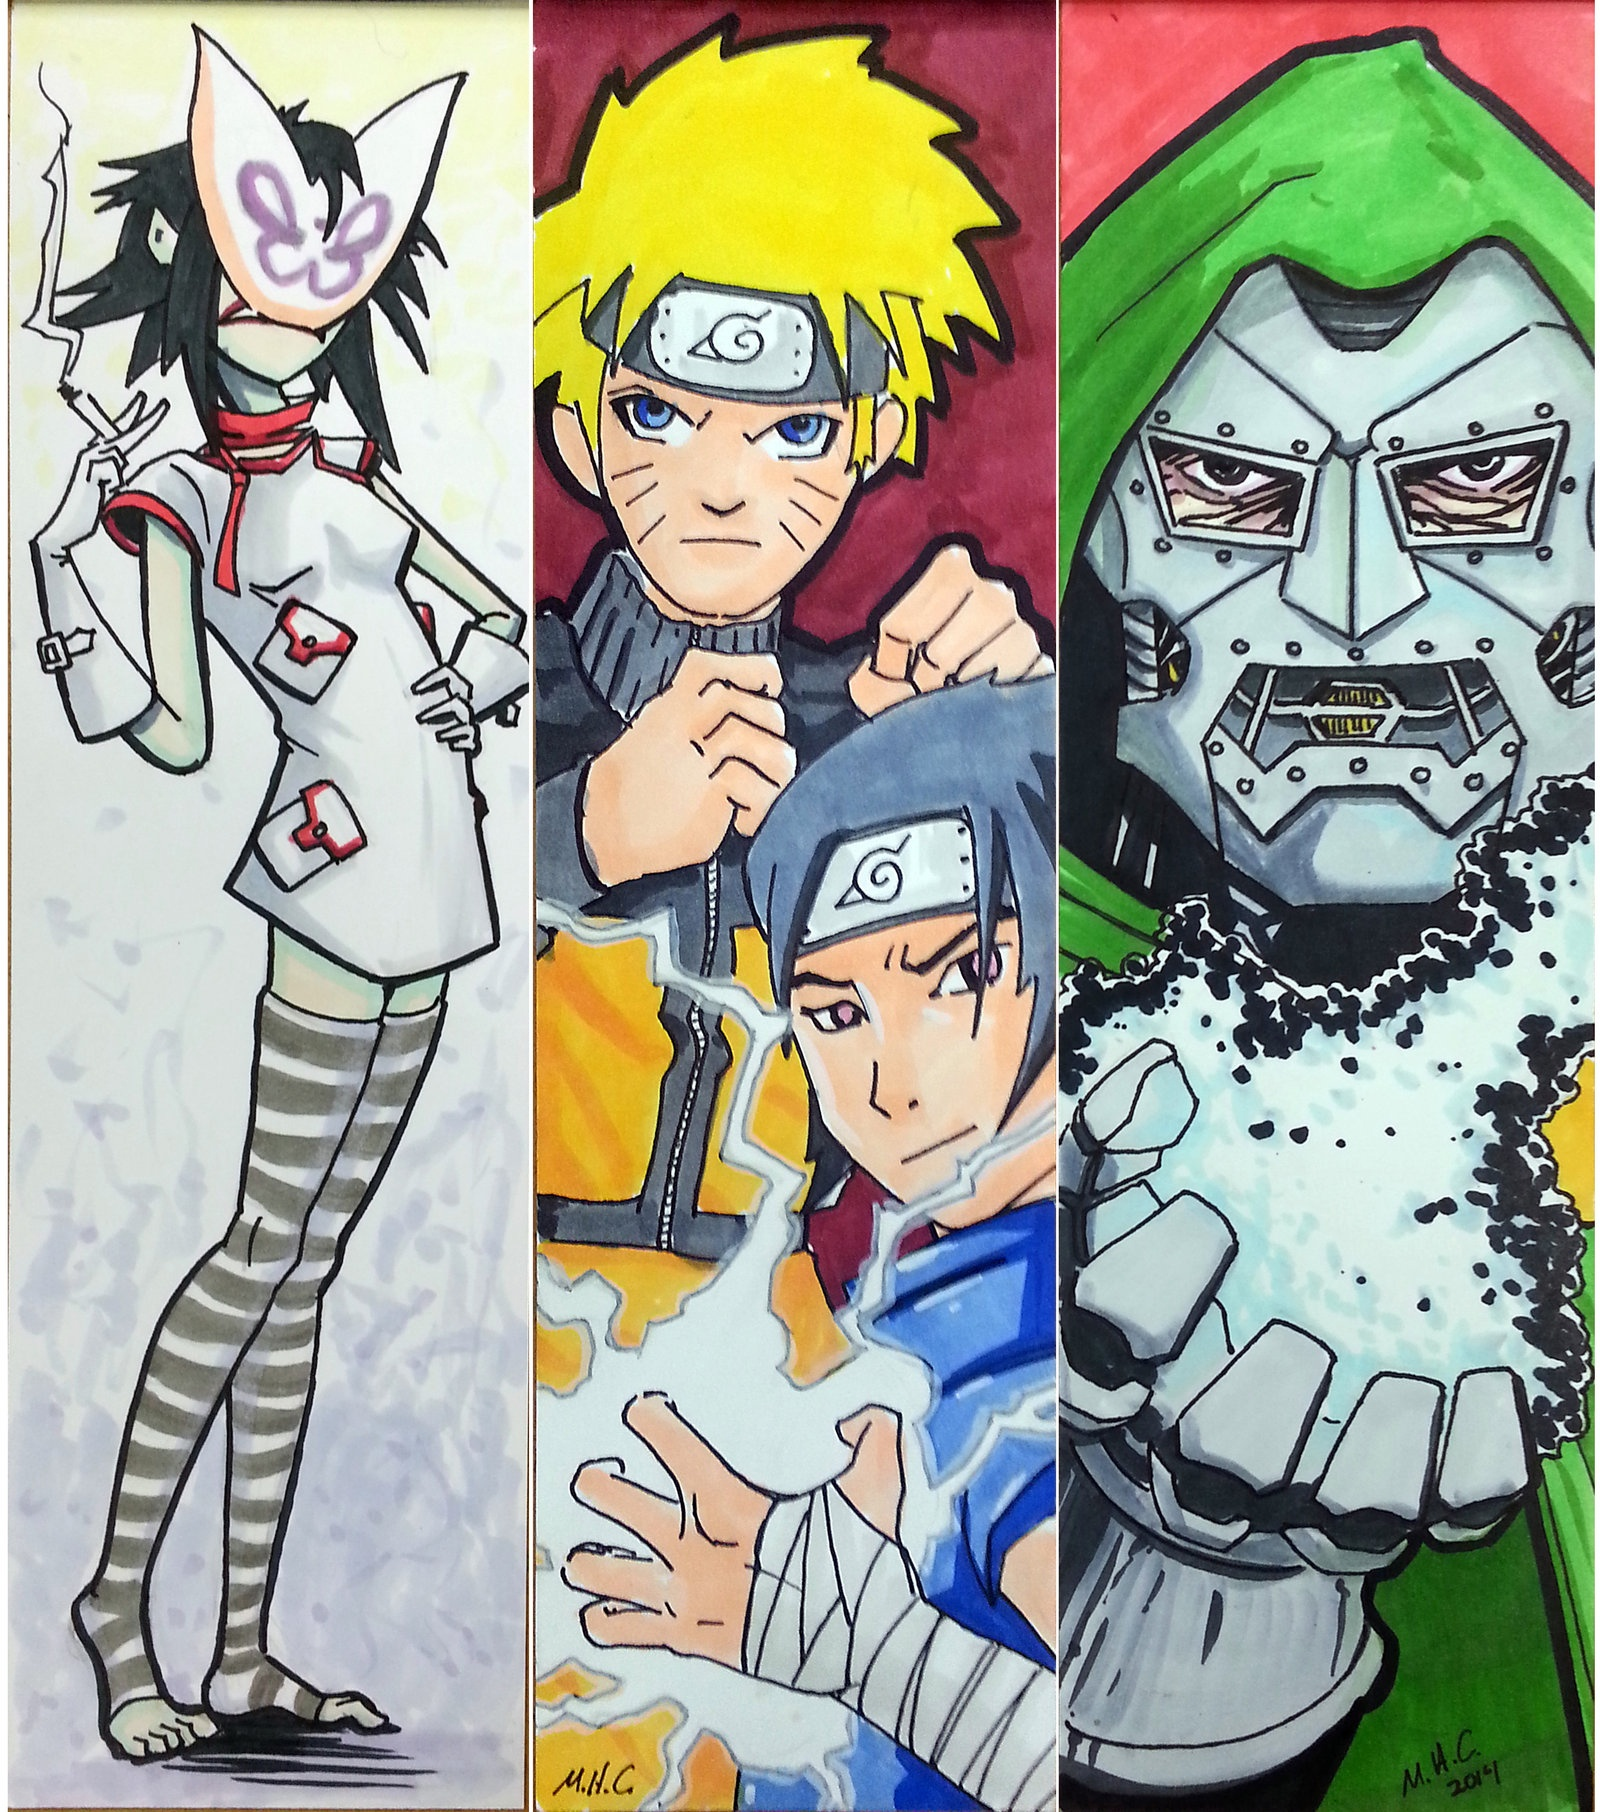 Japanese Anime And Comics Bookmarks   Free Printable Papercraft - Anime Bookmarks Printable For Free